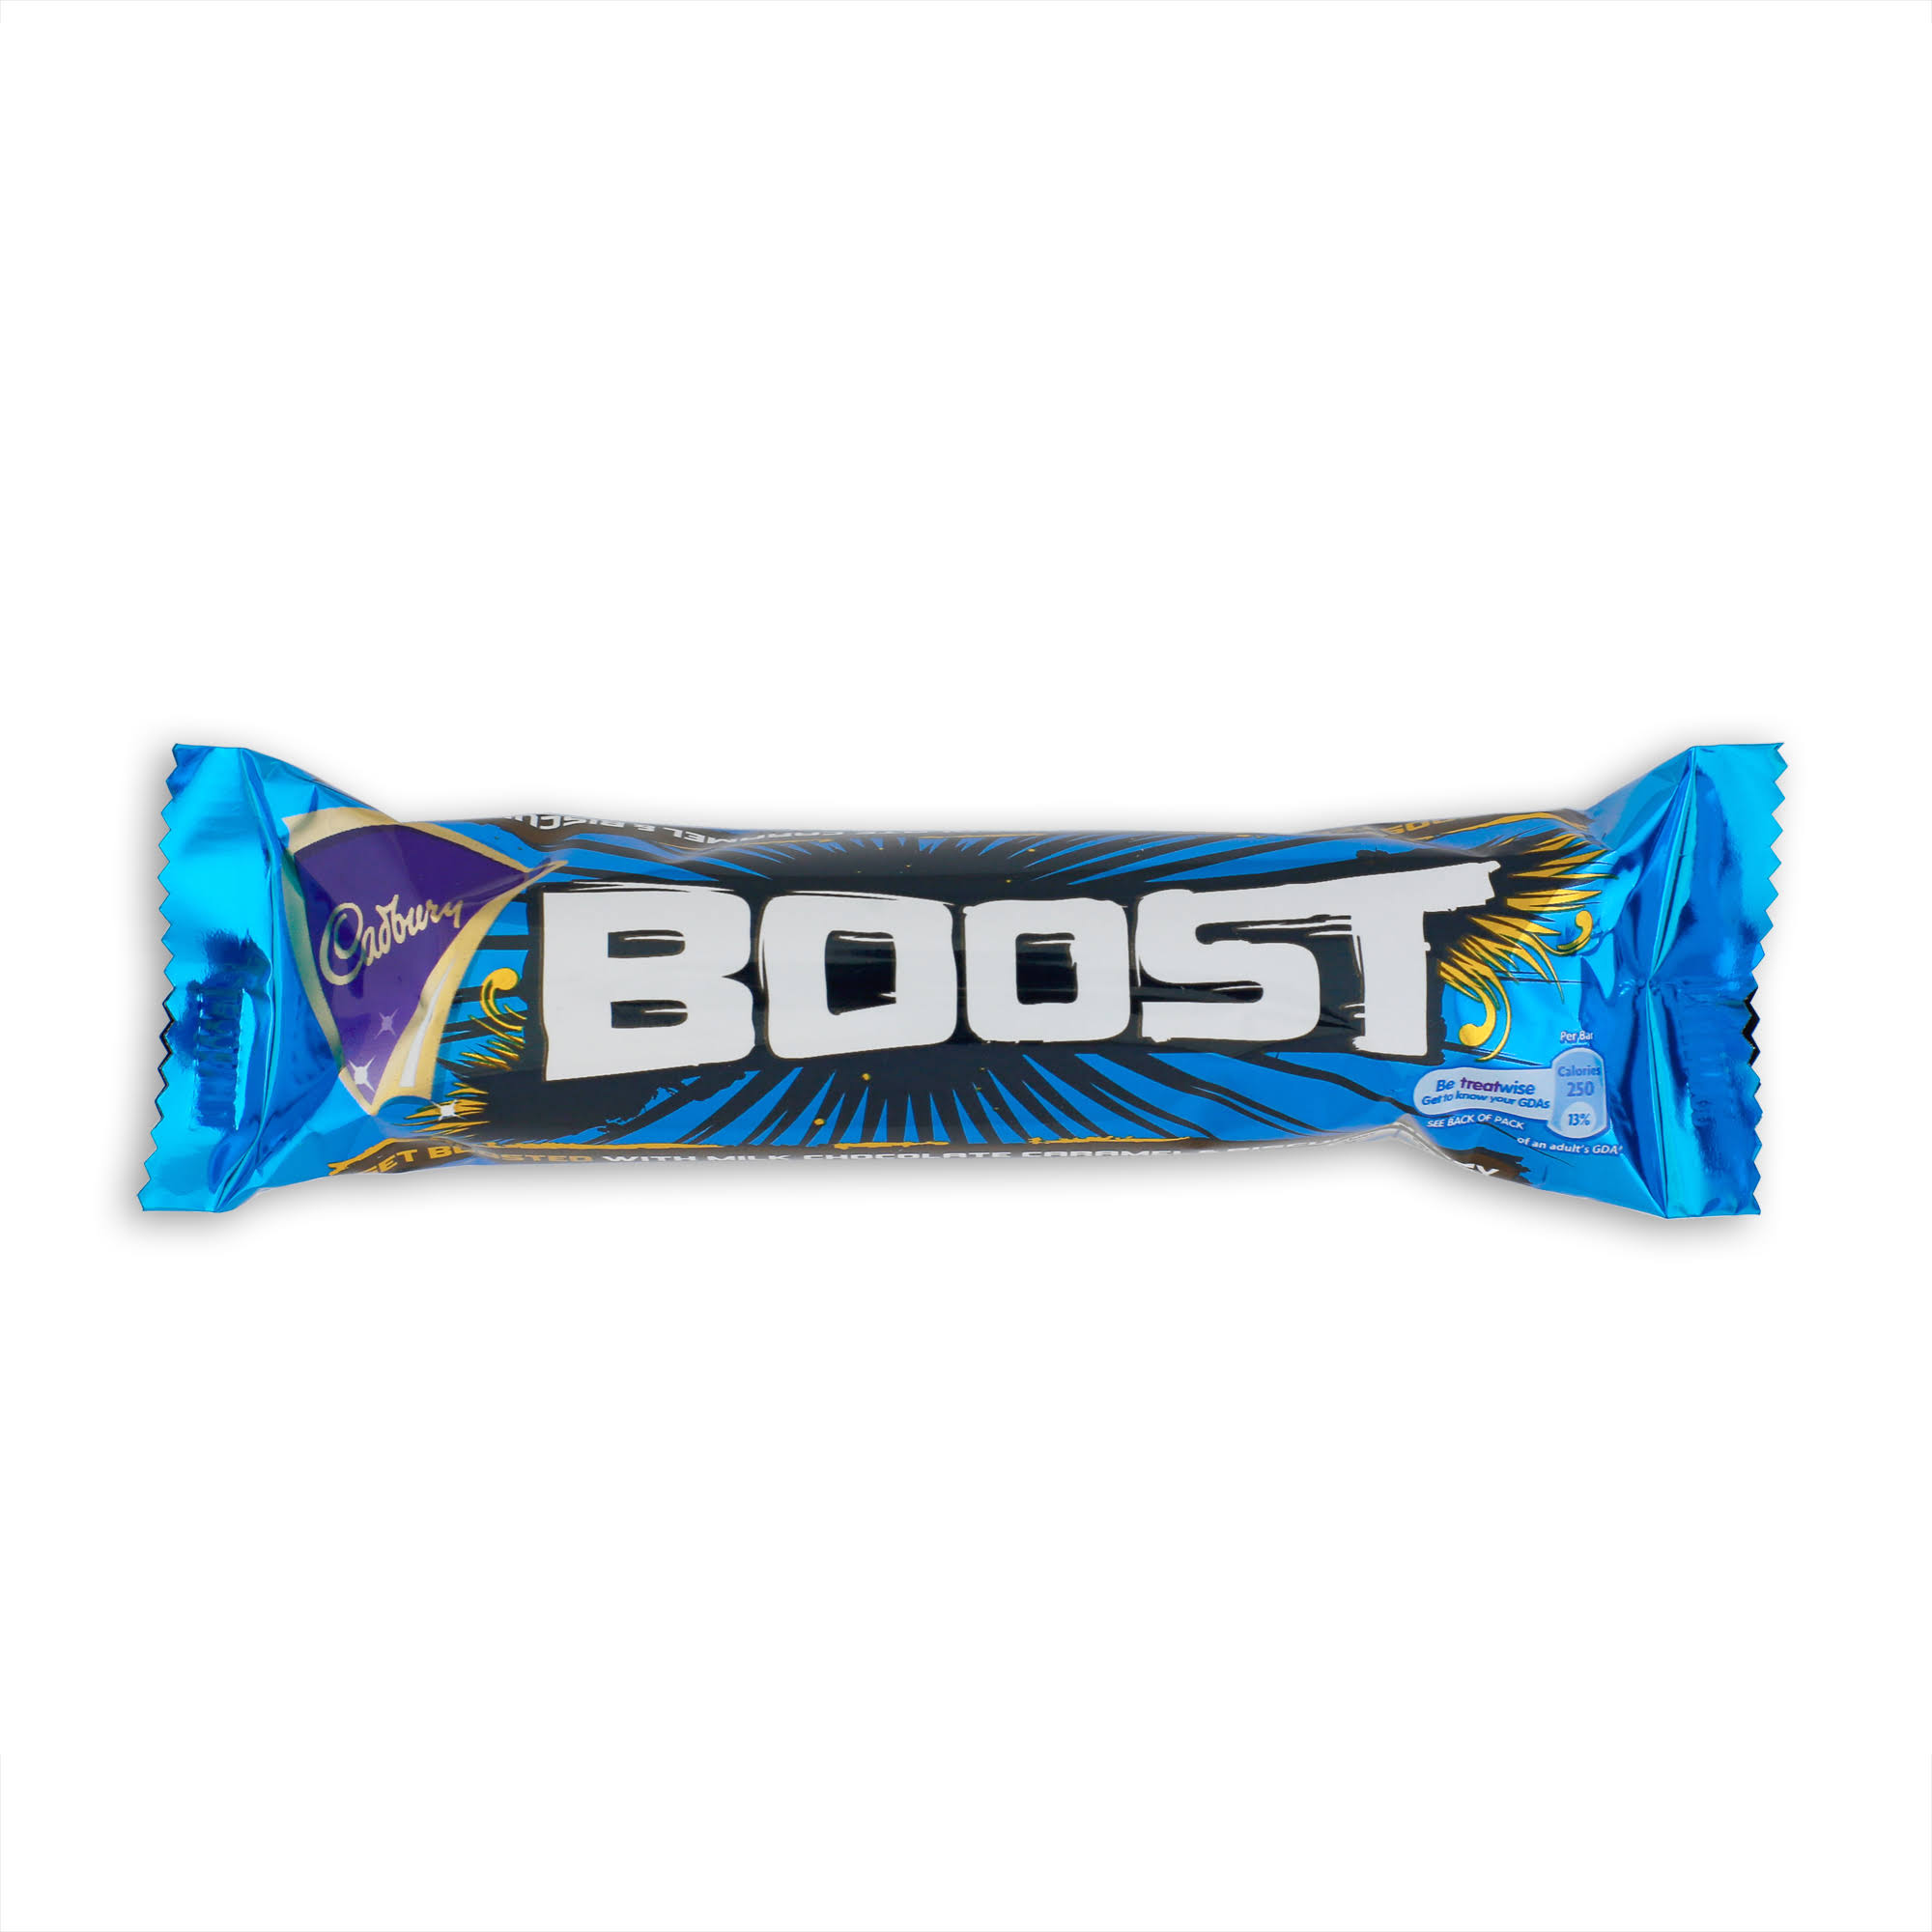 Cadbury Boost Chocolate Bar - 48.5g